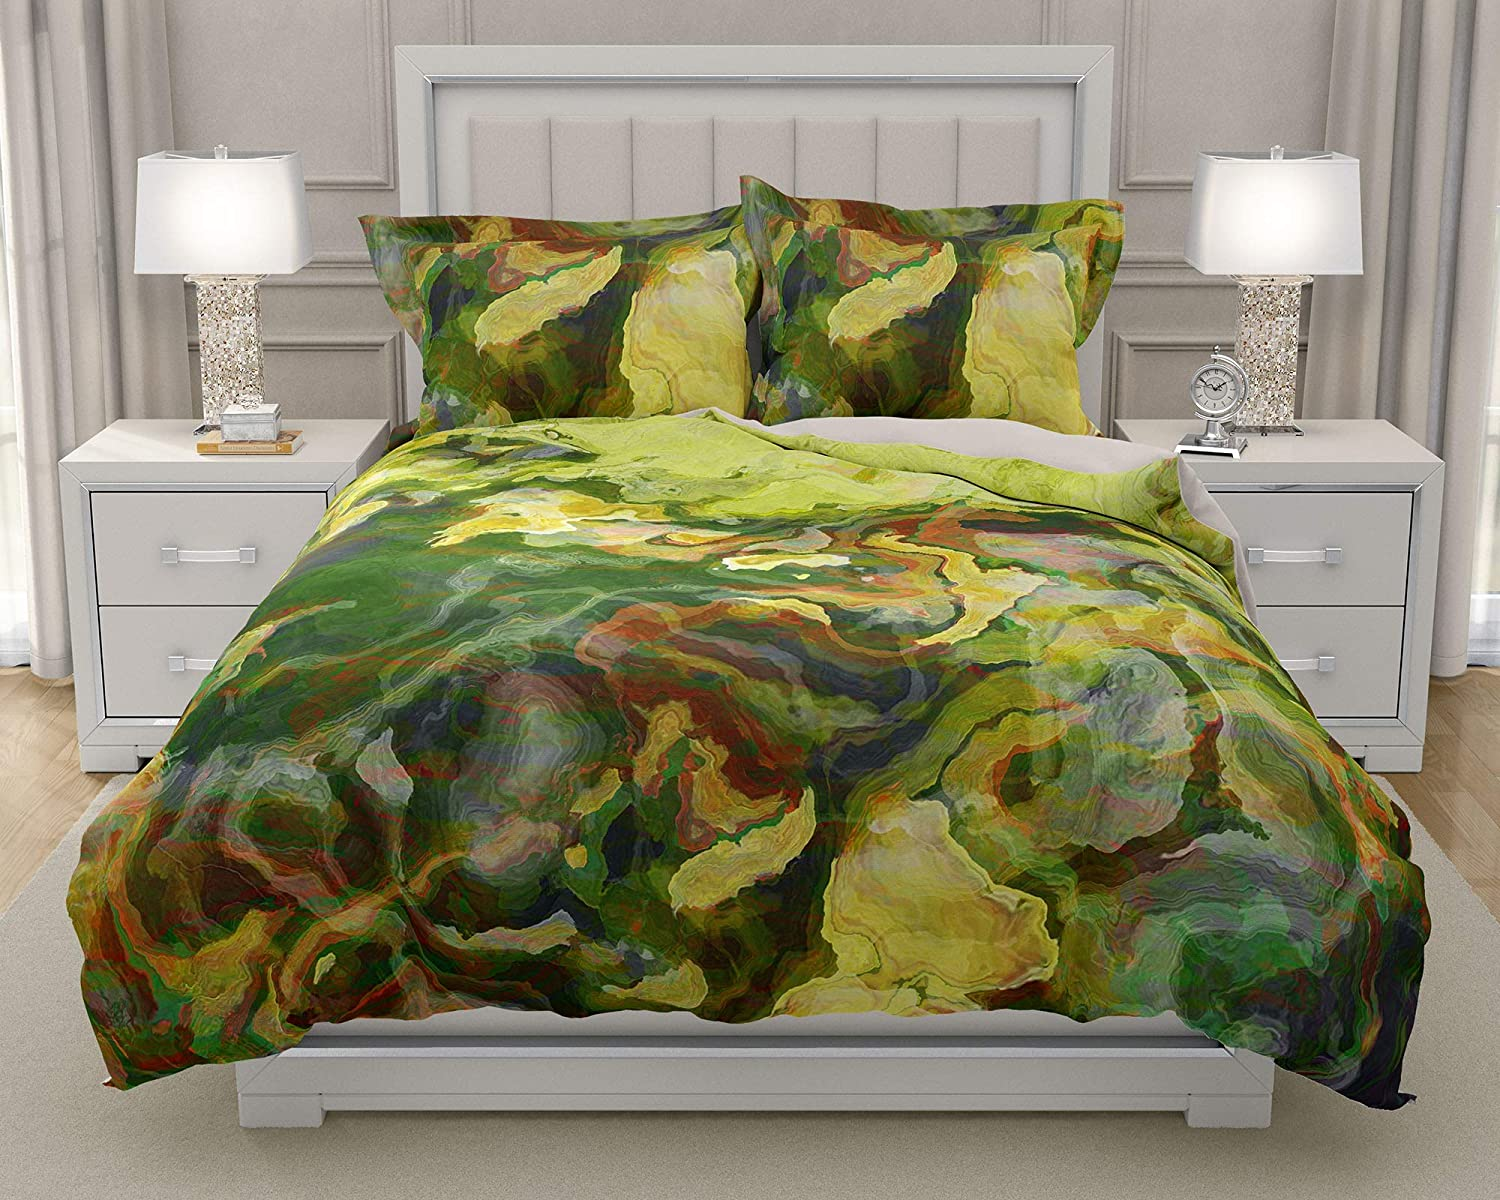 Image of Home and Kitchen King or Queen 3 pc Duvet Cover Set with abstract art, Lemon Tree